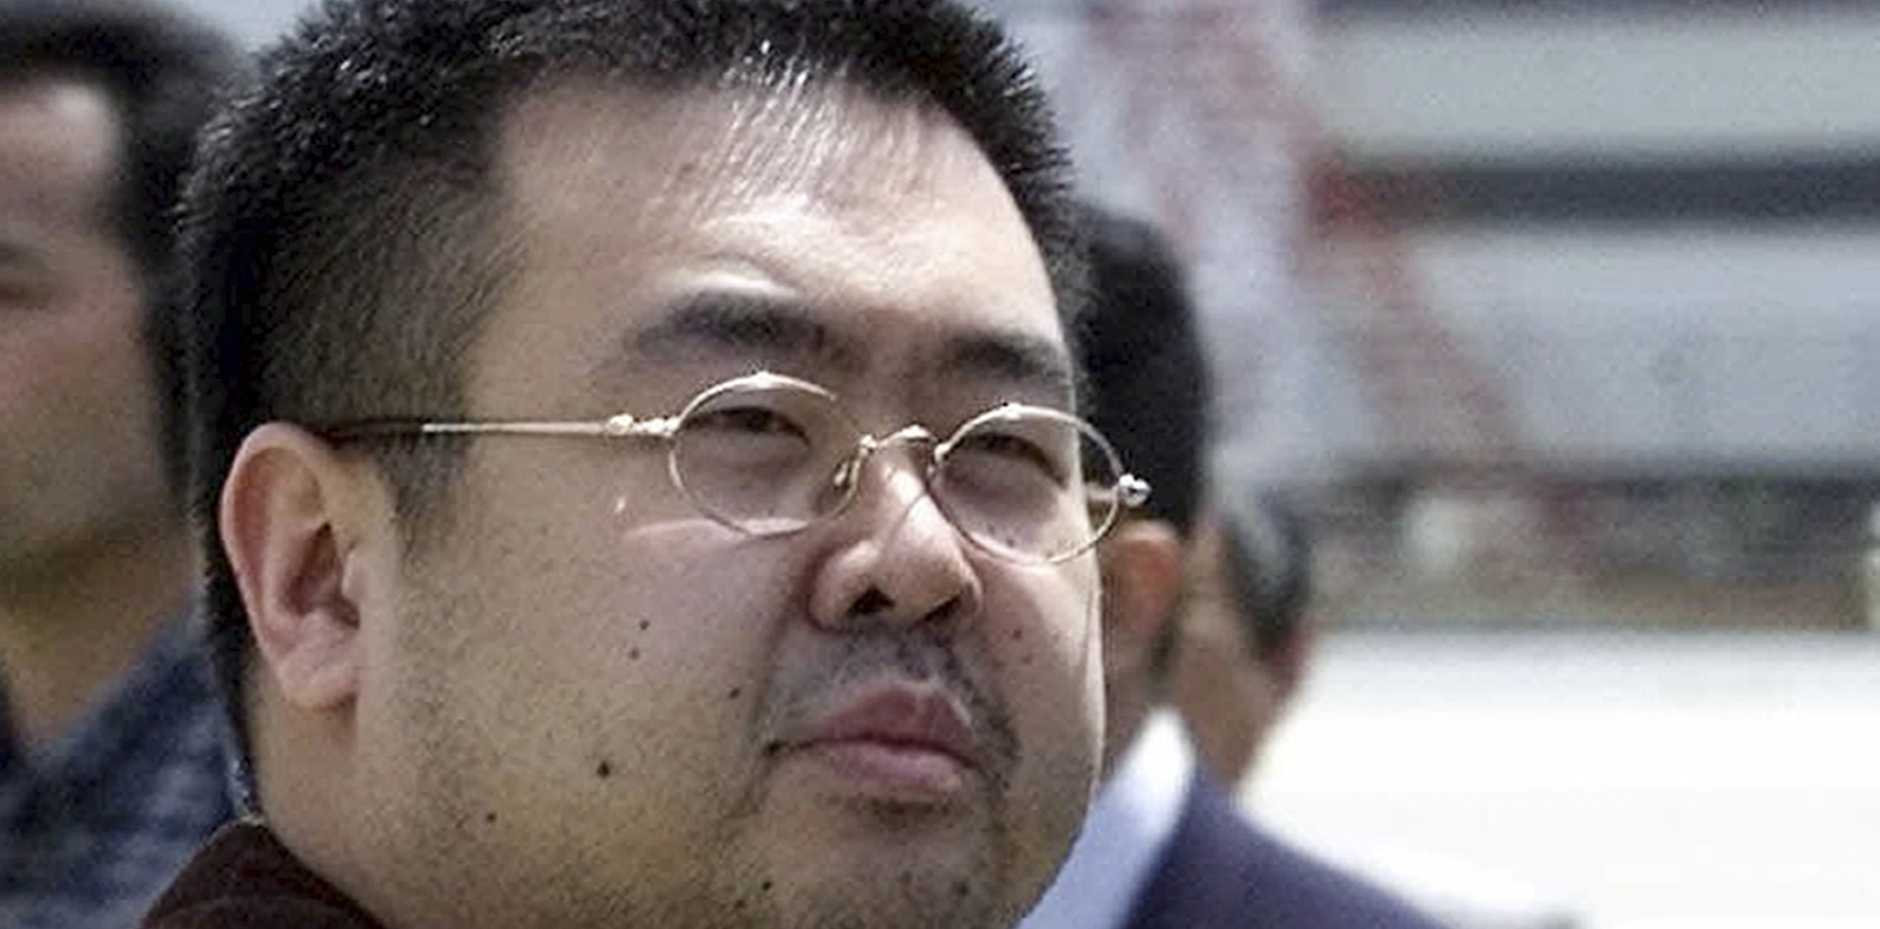 FILE - This May 4, 2001, file photo shows Kim Jong Nam, exiled half-brother of North Korea's leader Kim Jong Un, in Narita, Japan. No cause of death has been determined yet for Kim Jong Nam who died last week after apparently being poisoned in a Kuala Lumpur airport, officials said Tuesday, Feb. 21, 2017. (AP Photos/Shizuo Kambayashi, File)